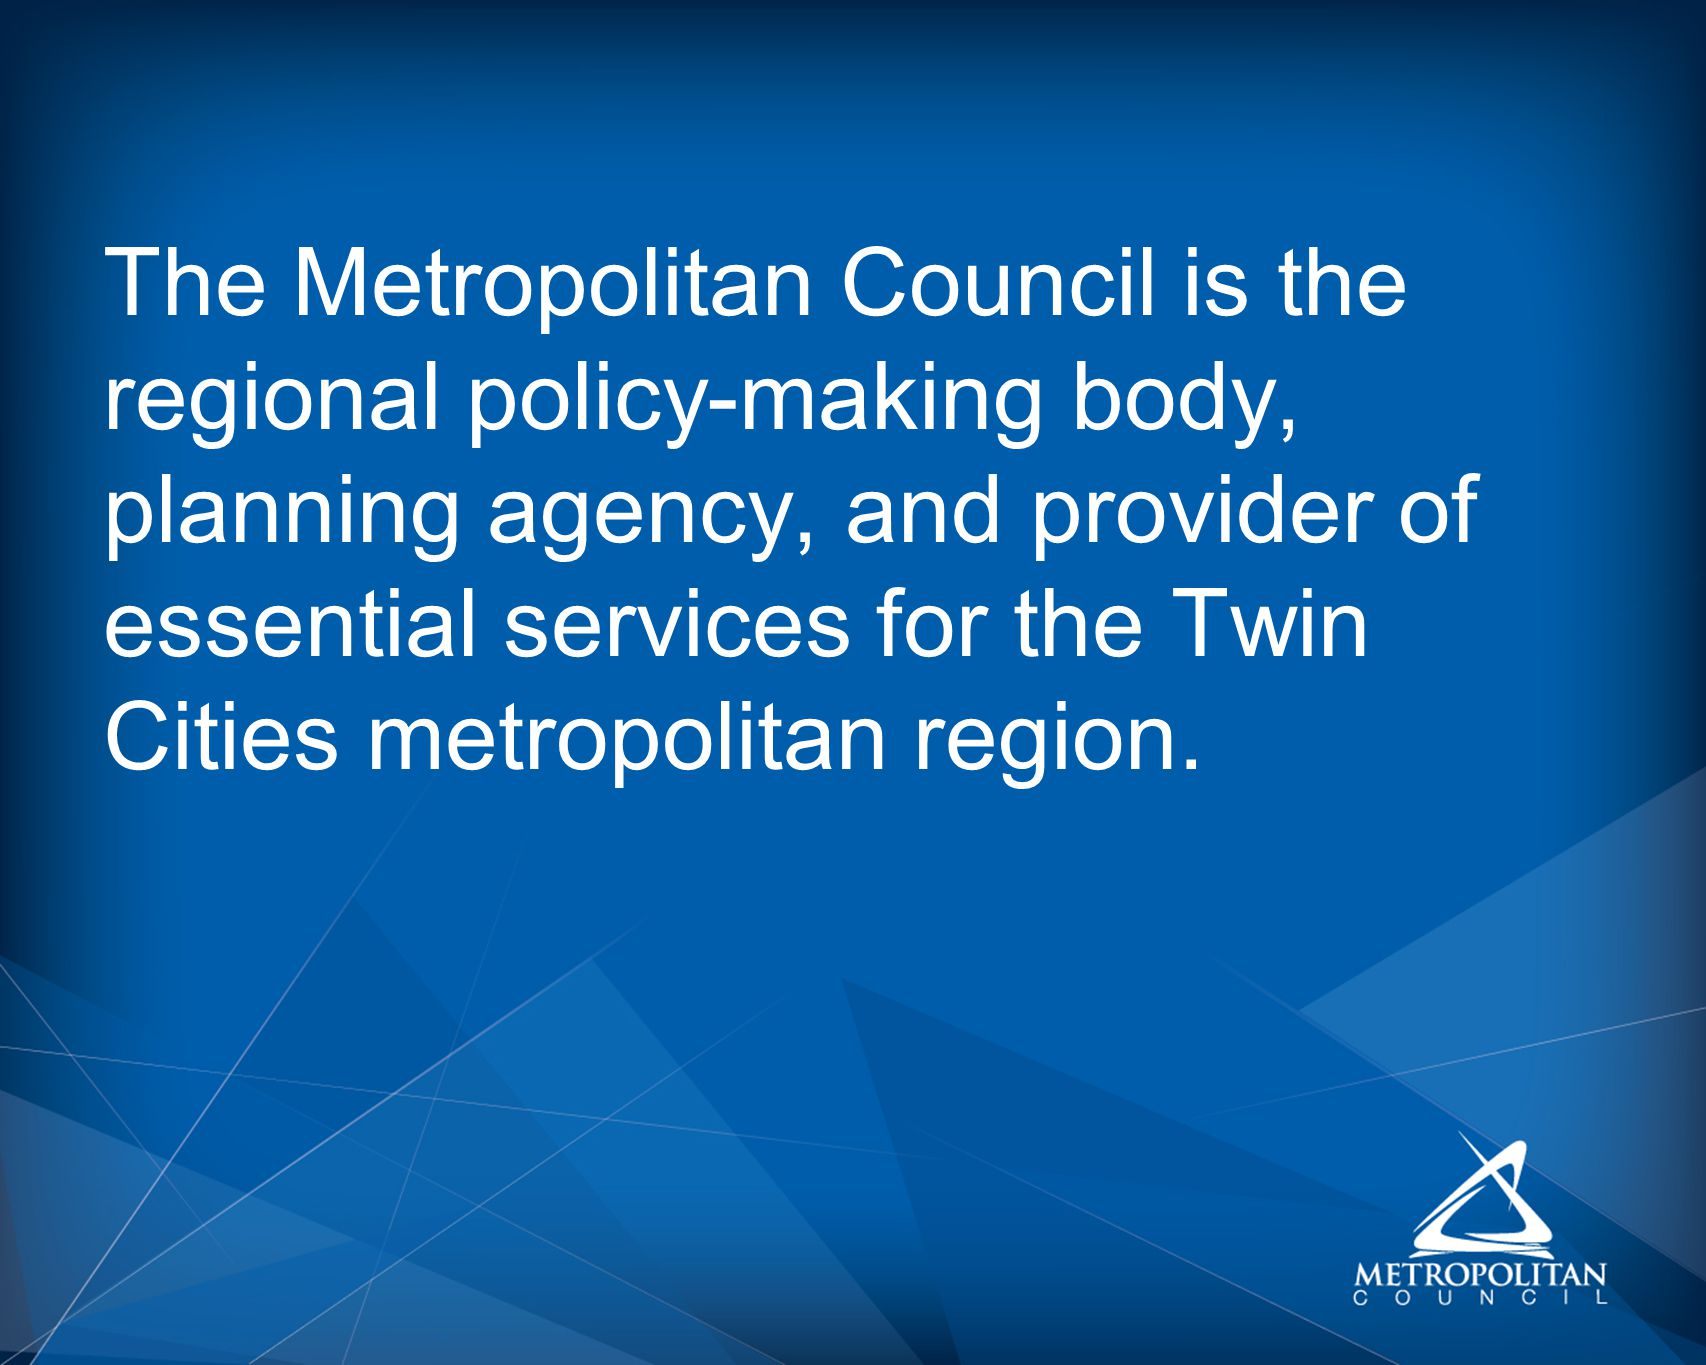 The Metropolitan Council is the regional policy-making body, planning agency, and provider of essential services for the Twin Cities metropolitan region.